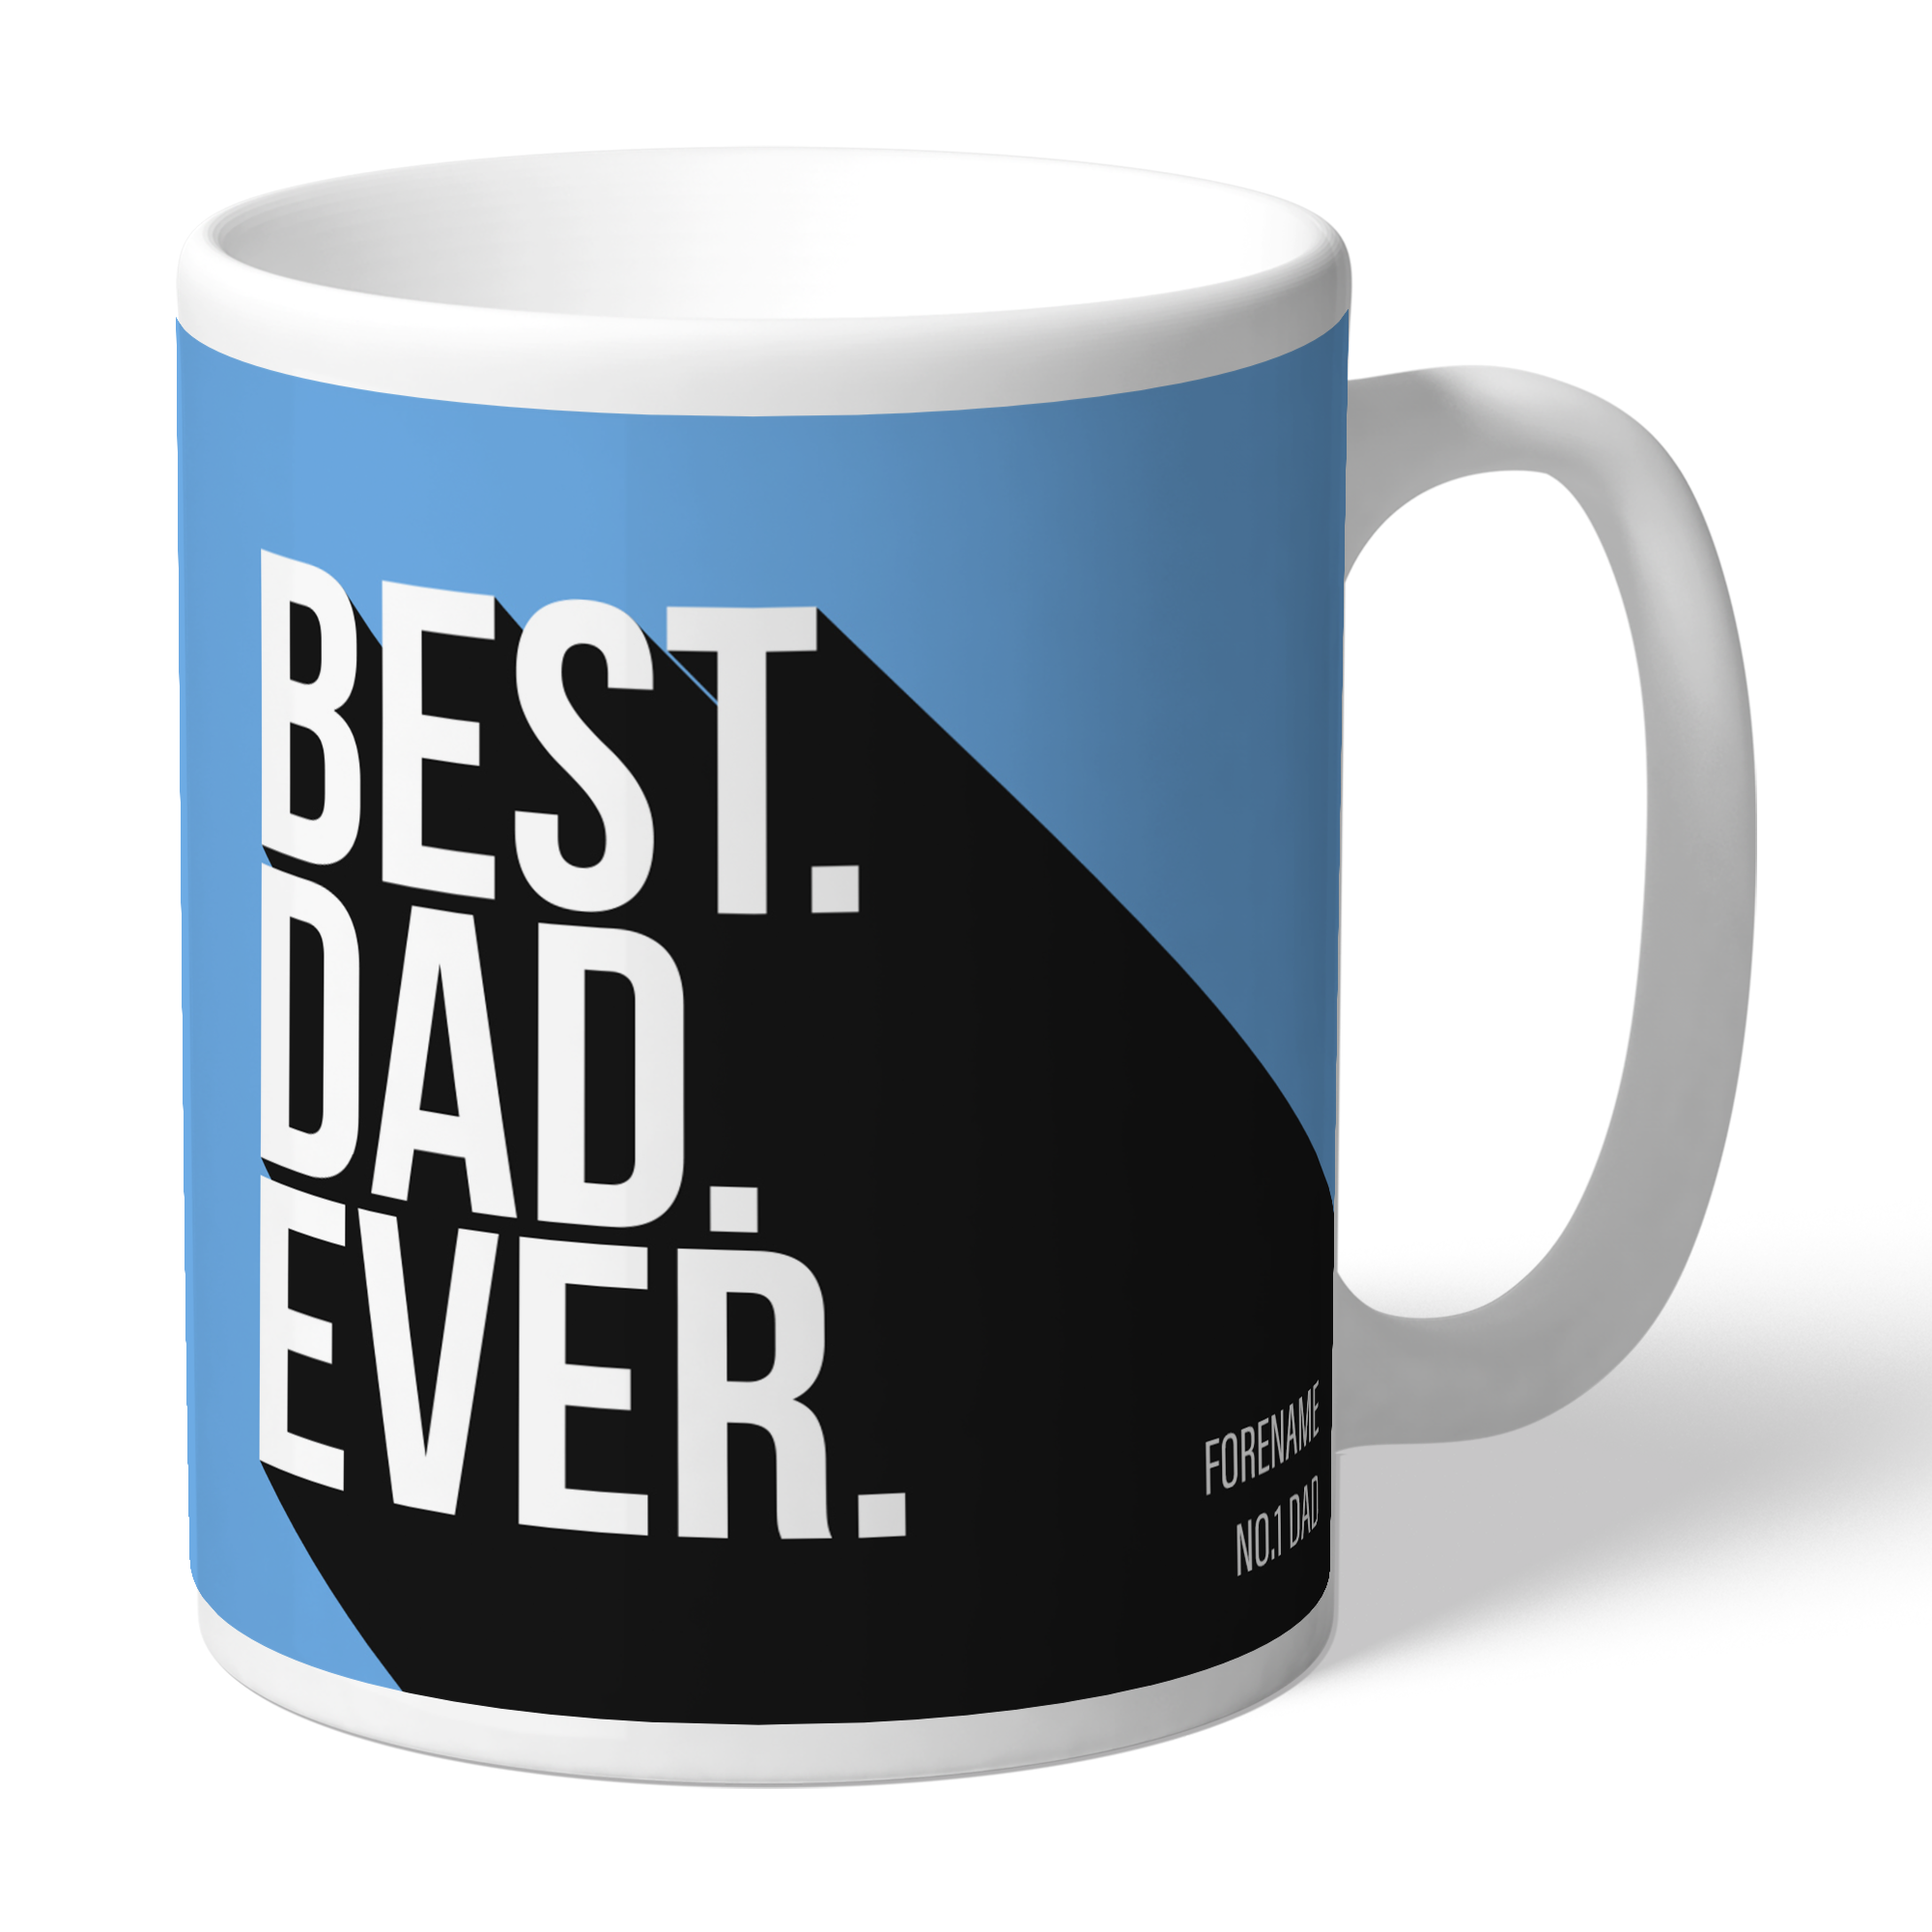 Manchester City FC Best Dad Ever Mug